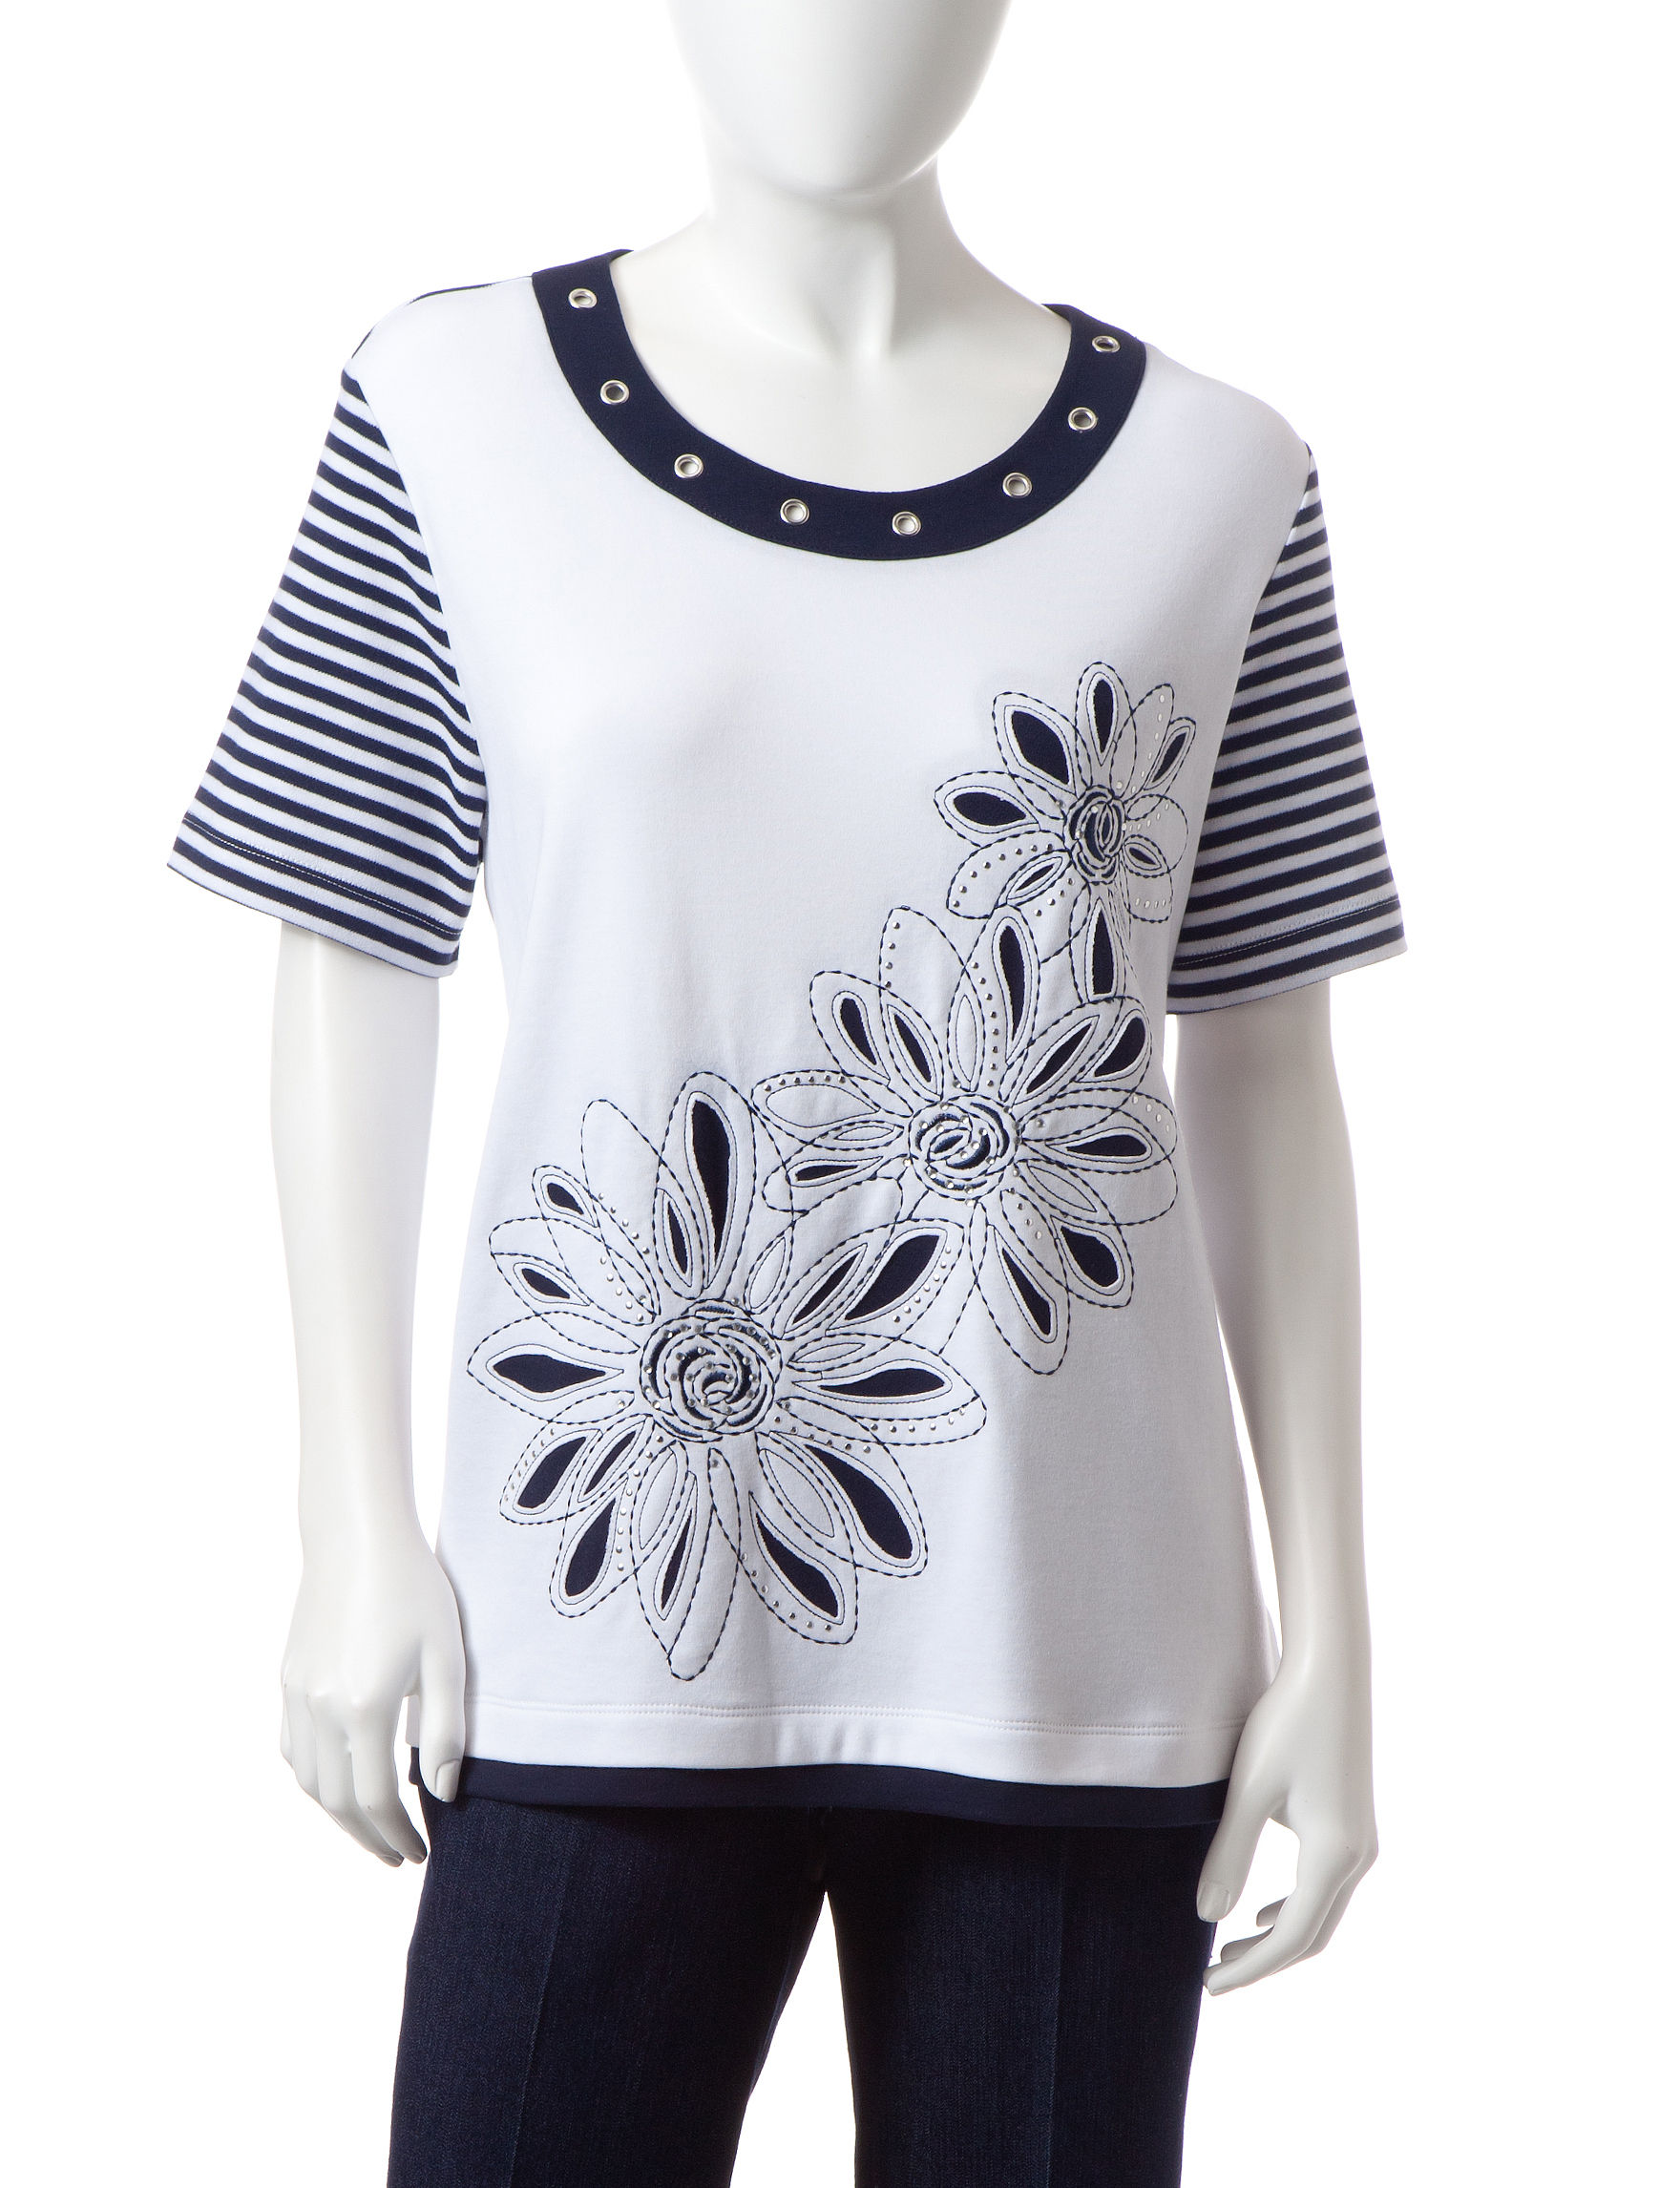 Alfred Dunner Black / White Tees & Tanks